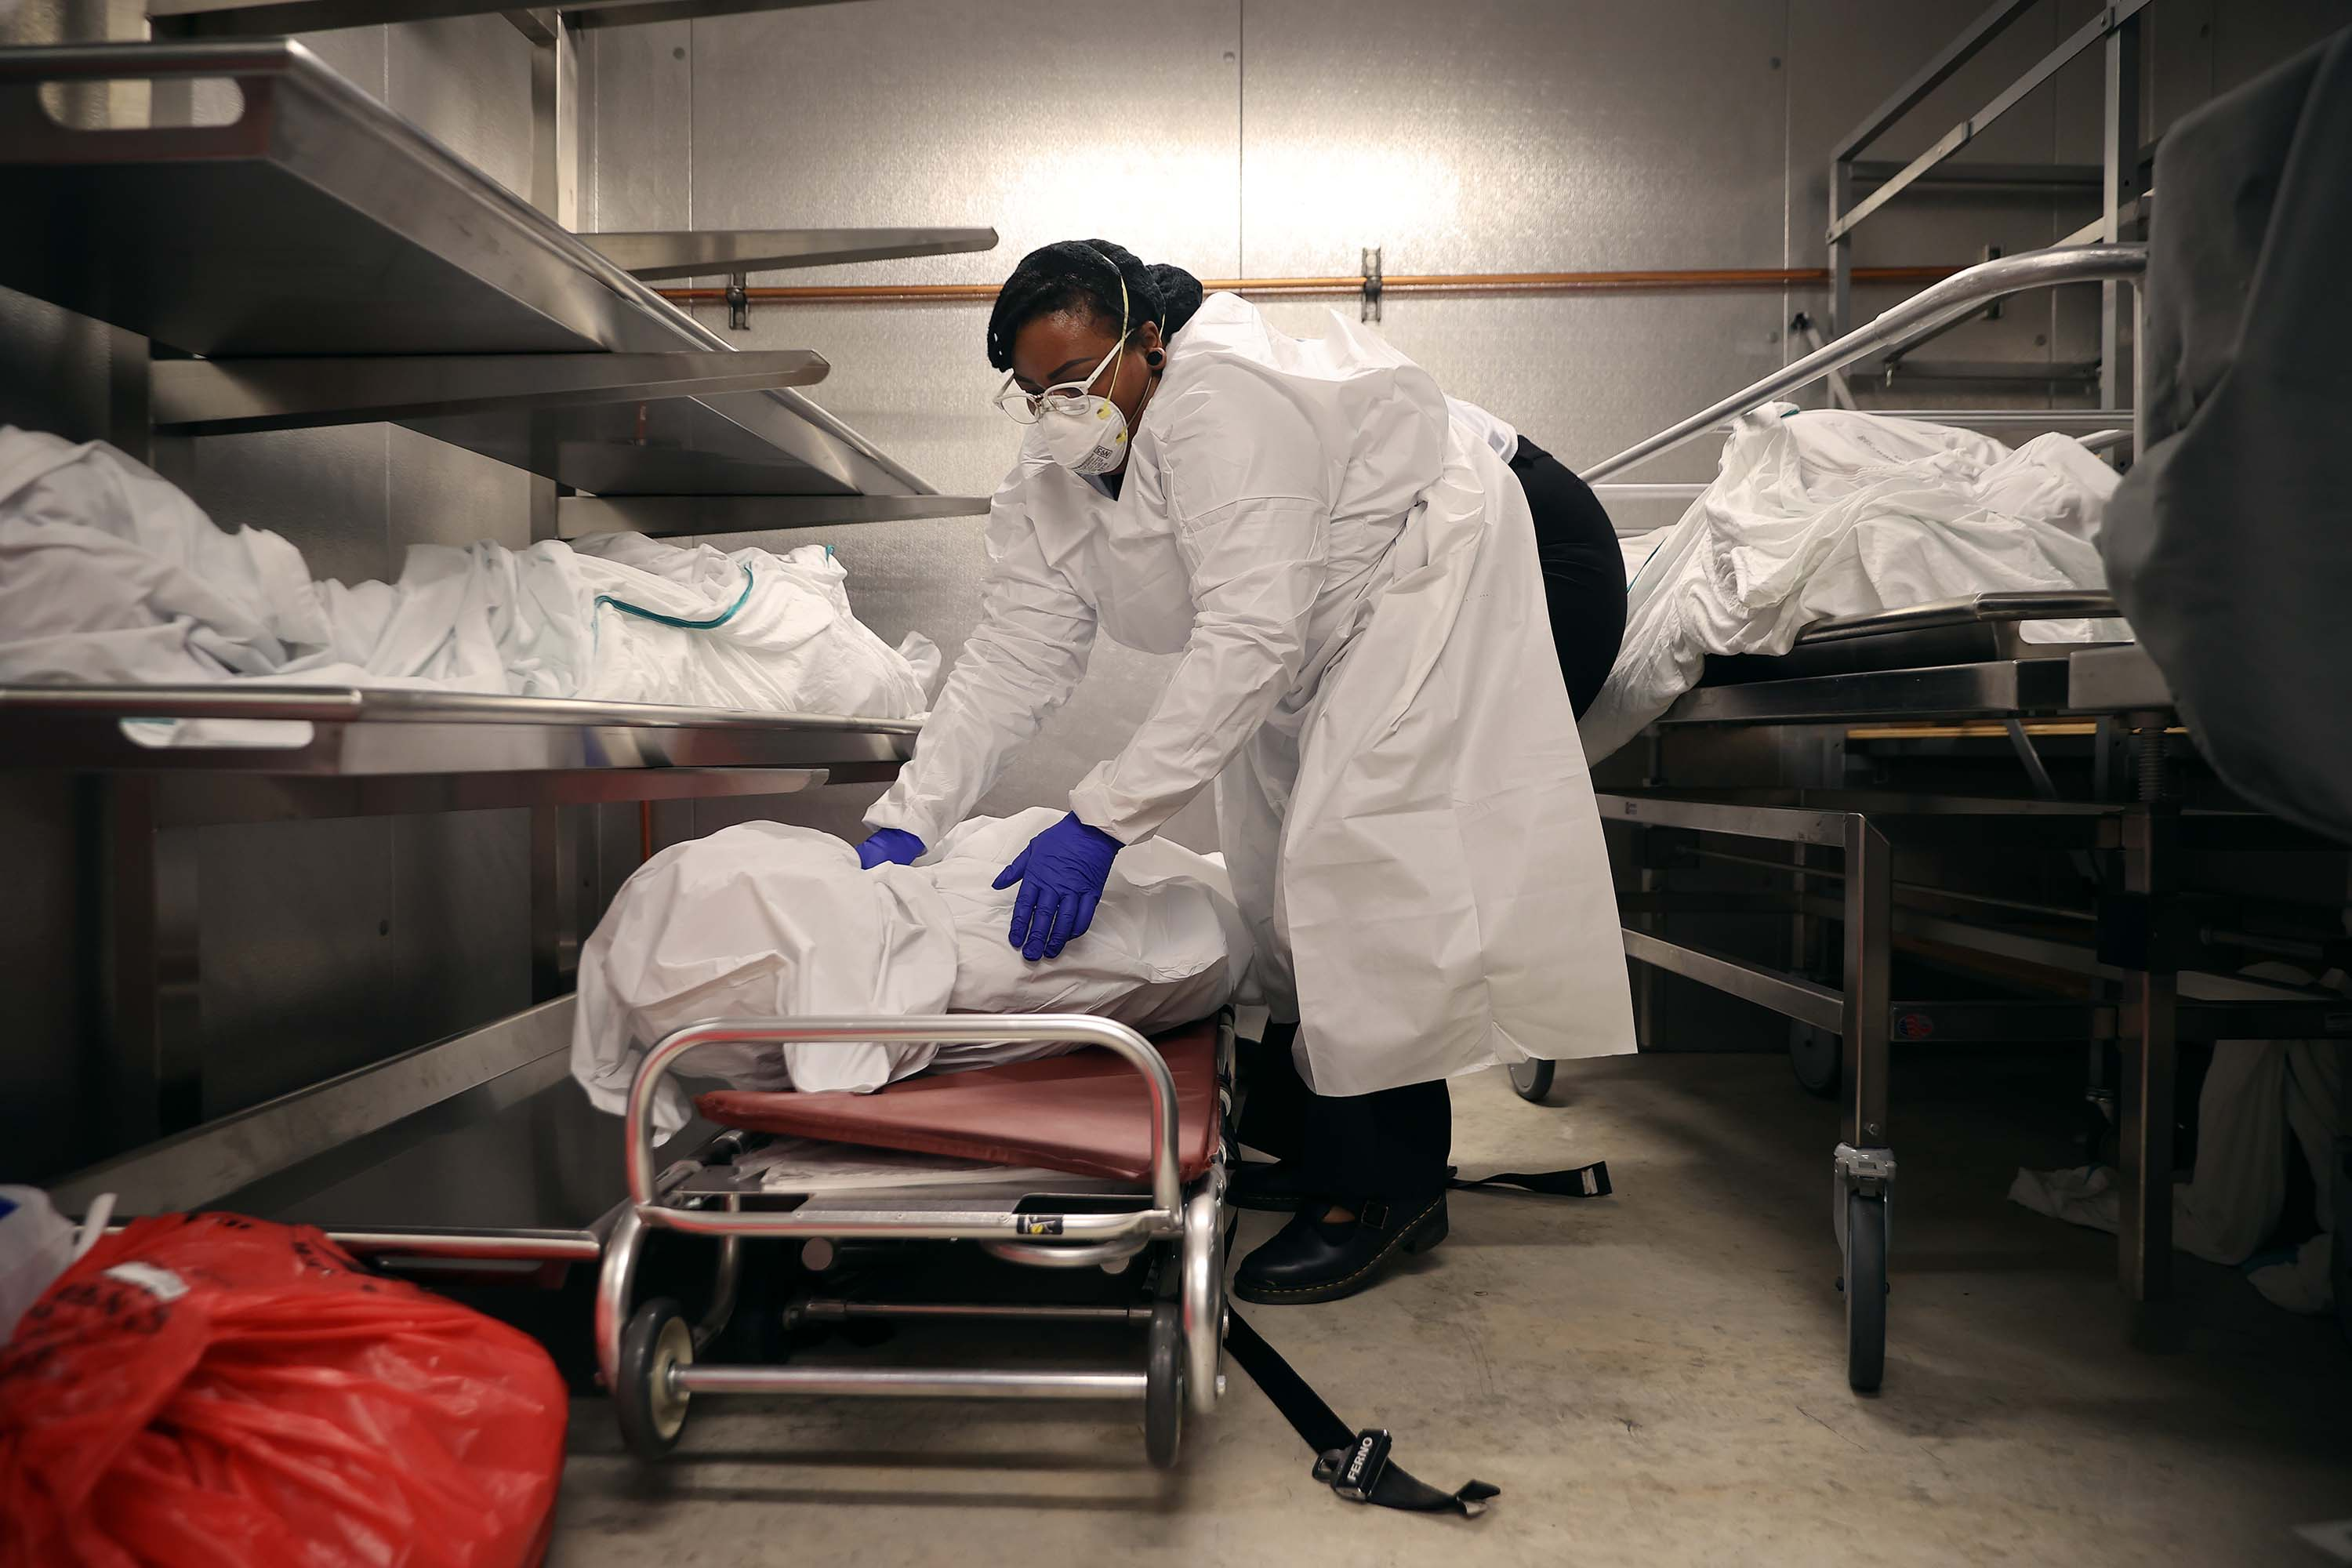 A transporter for Maryland Cremation Services moves the remains of a coronavirus victim onto a stretcher at a morgue in Silver Spring, Maryland, on May 11.